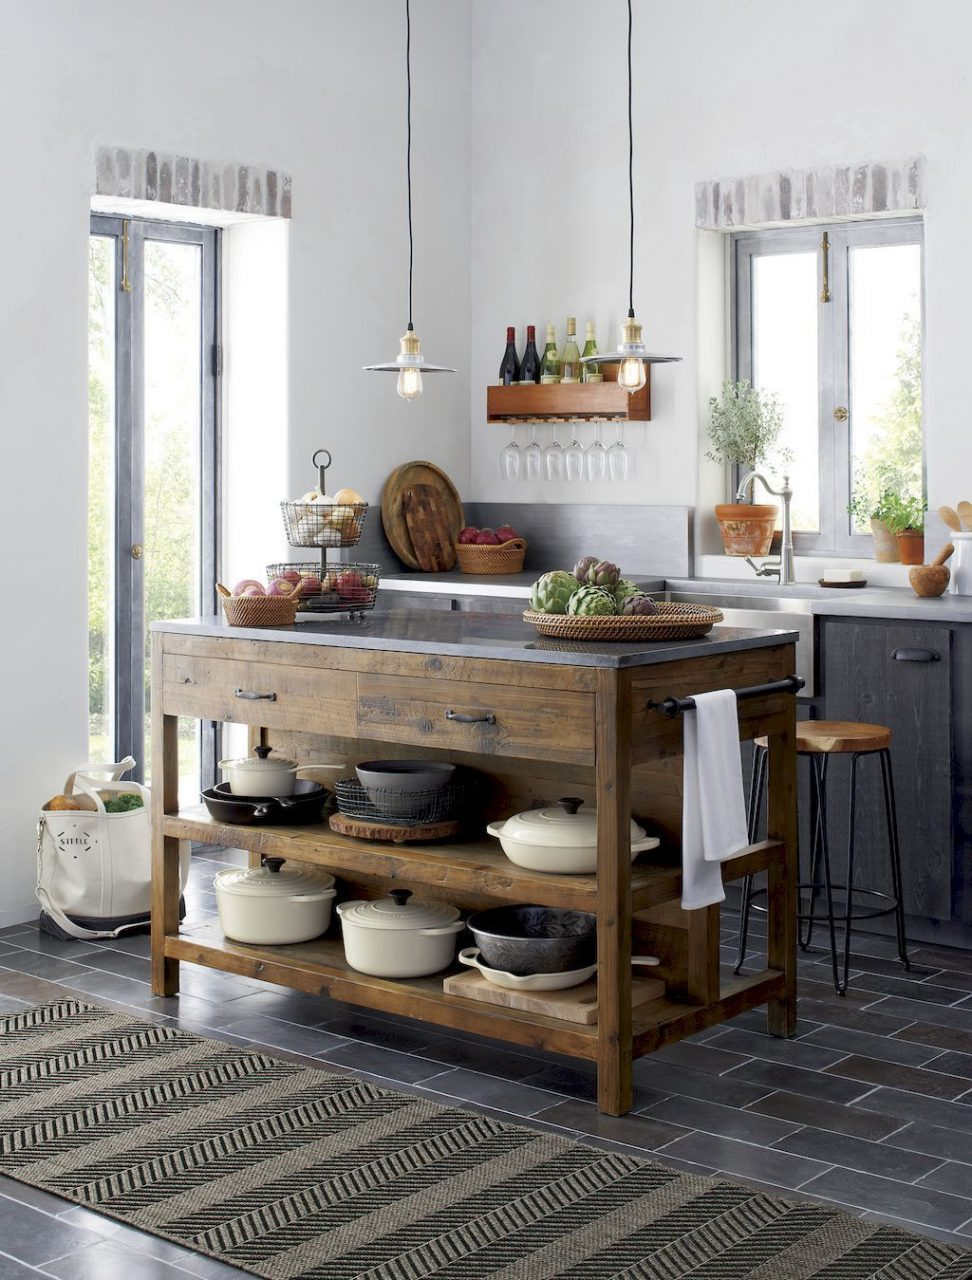 44 Wonderful Ideas To Design Your Rustic Kitchen 42 Interiors